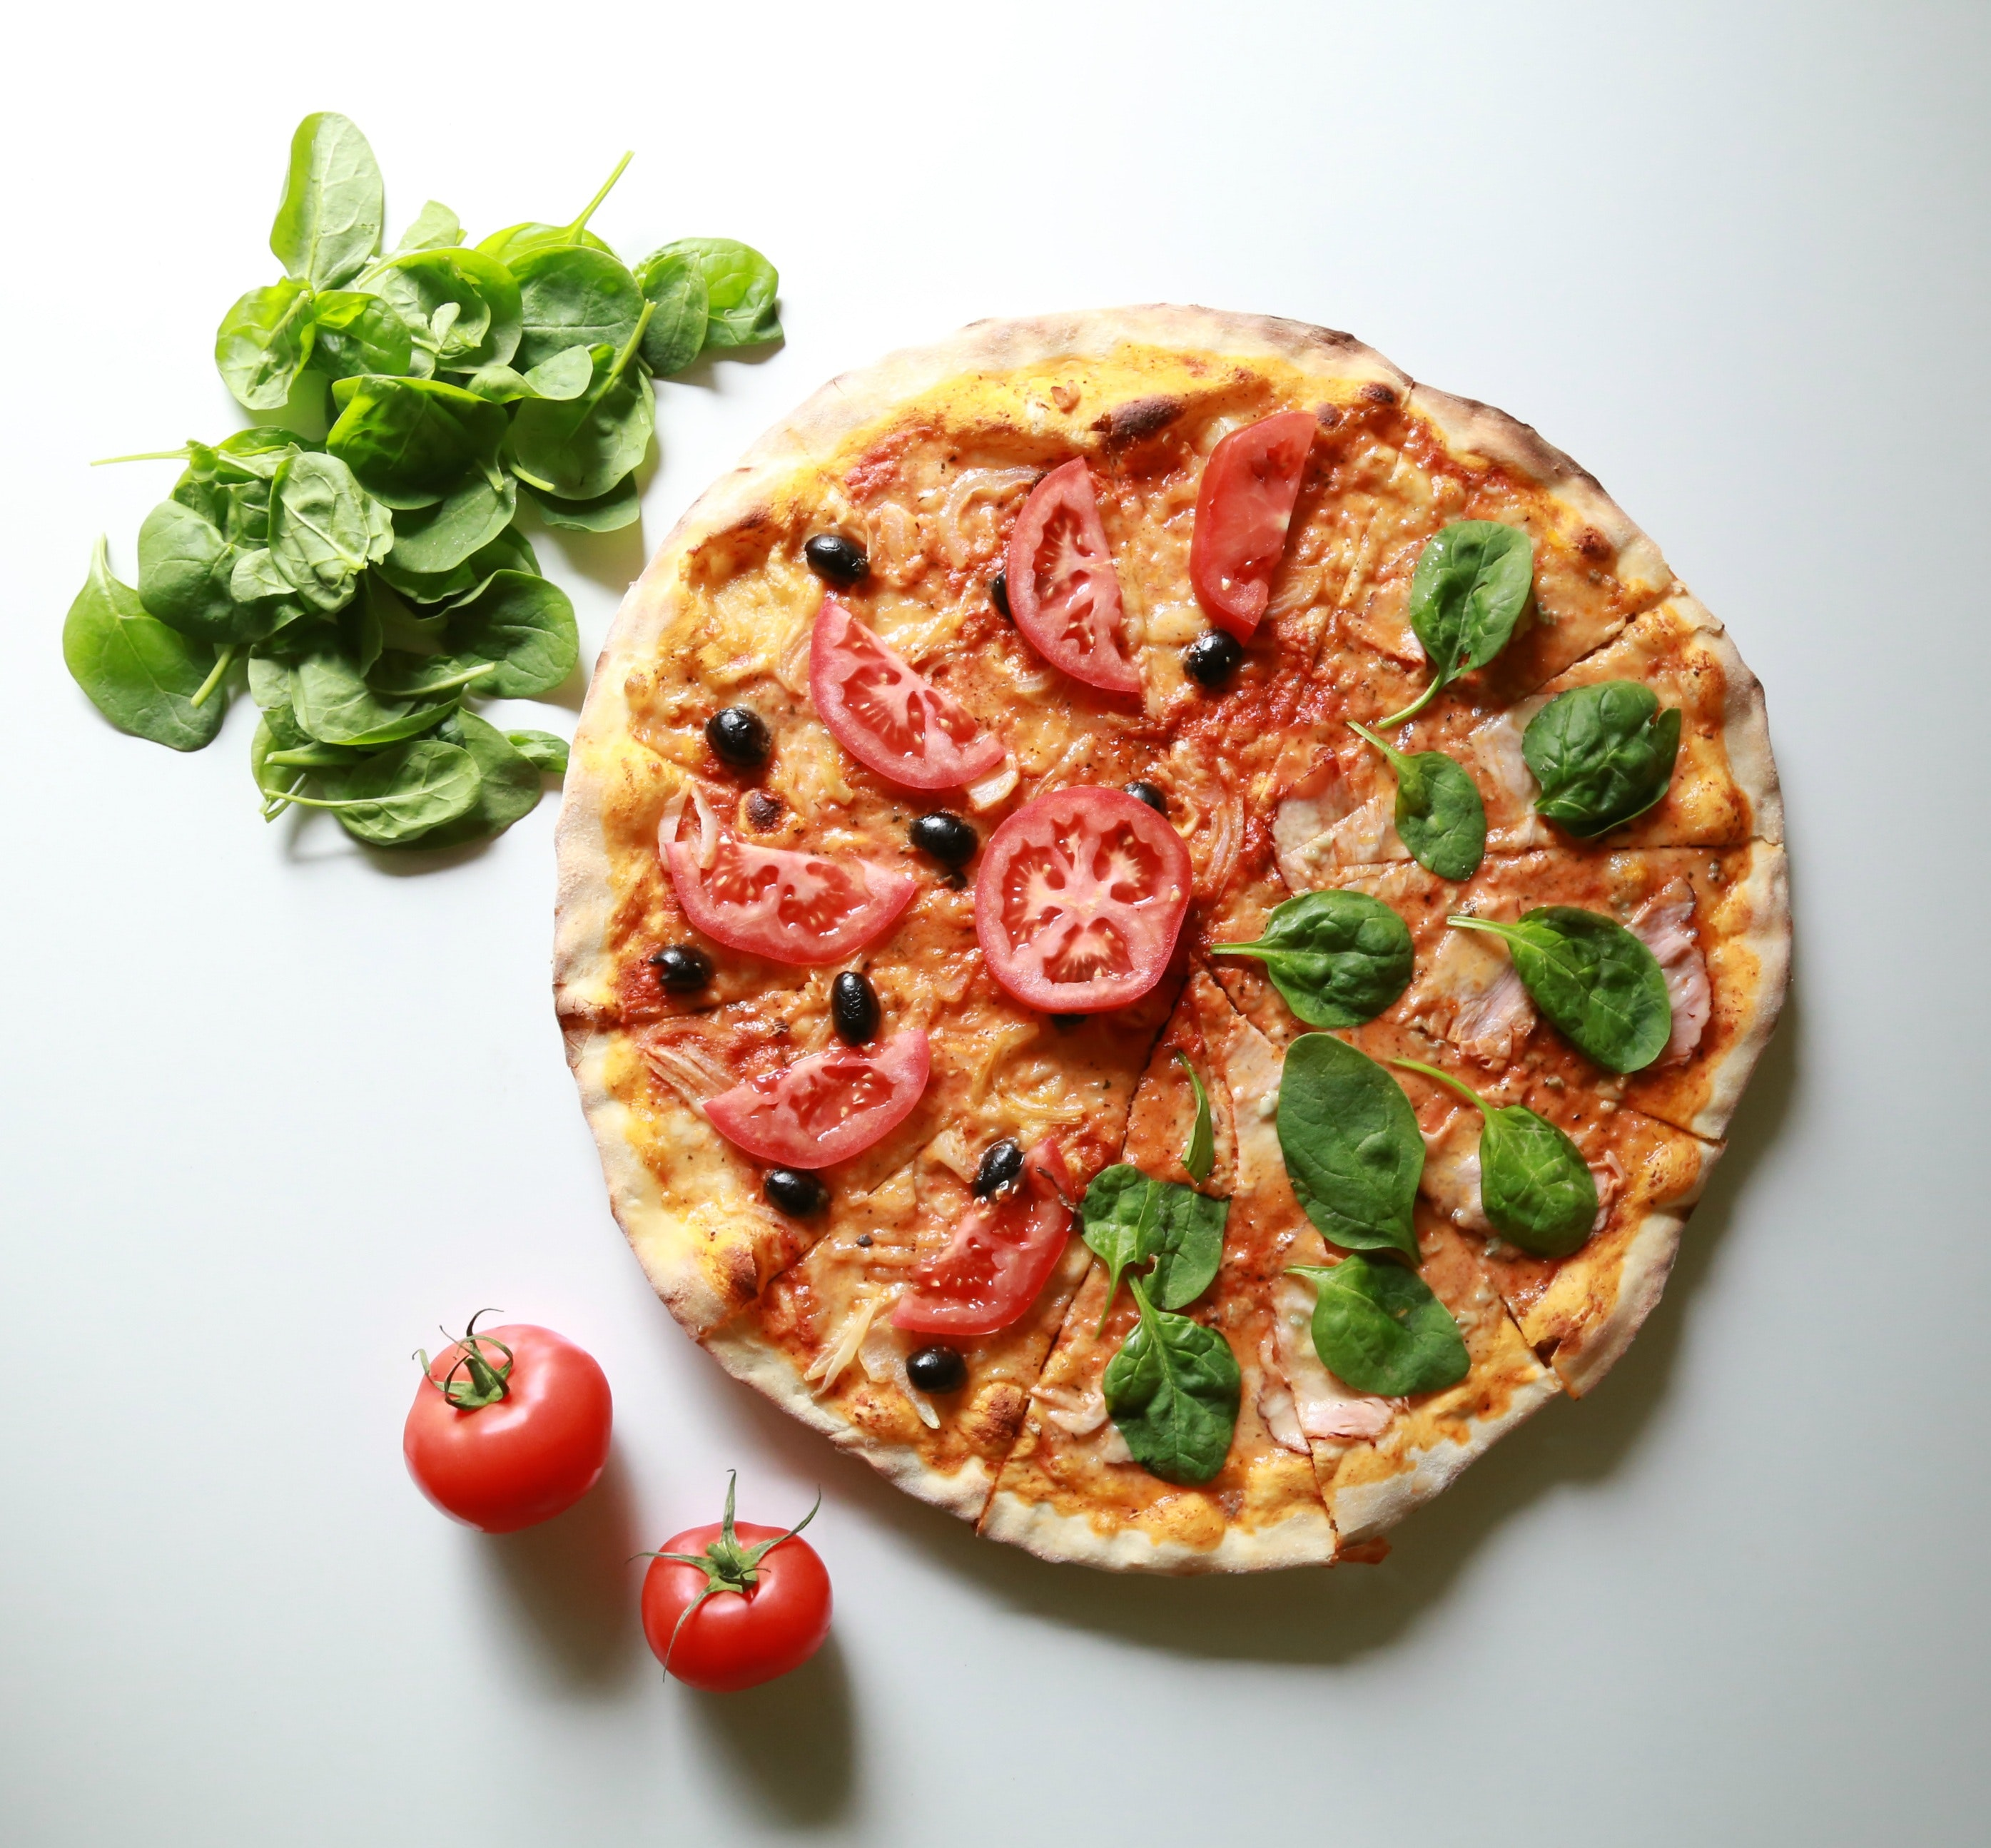 A stock photo of an arugula-tomato pizza. Caption: Believe it or not, but you can actually get tired of eating pizzas